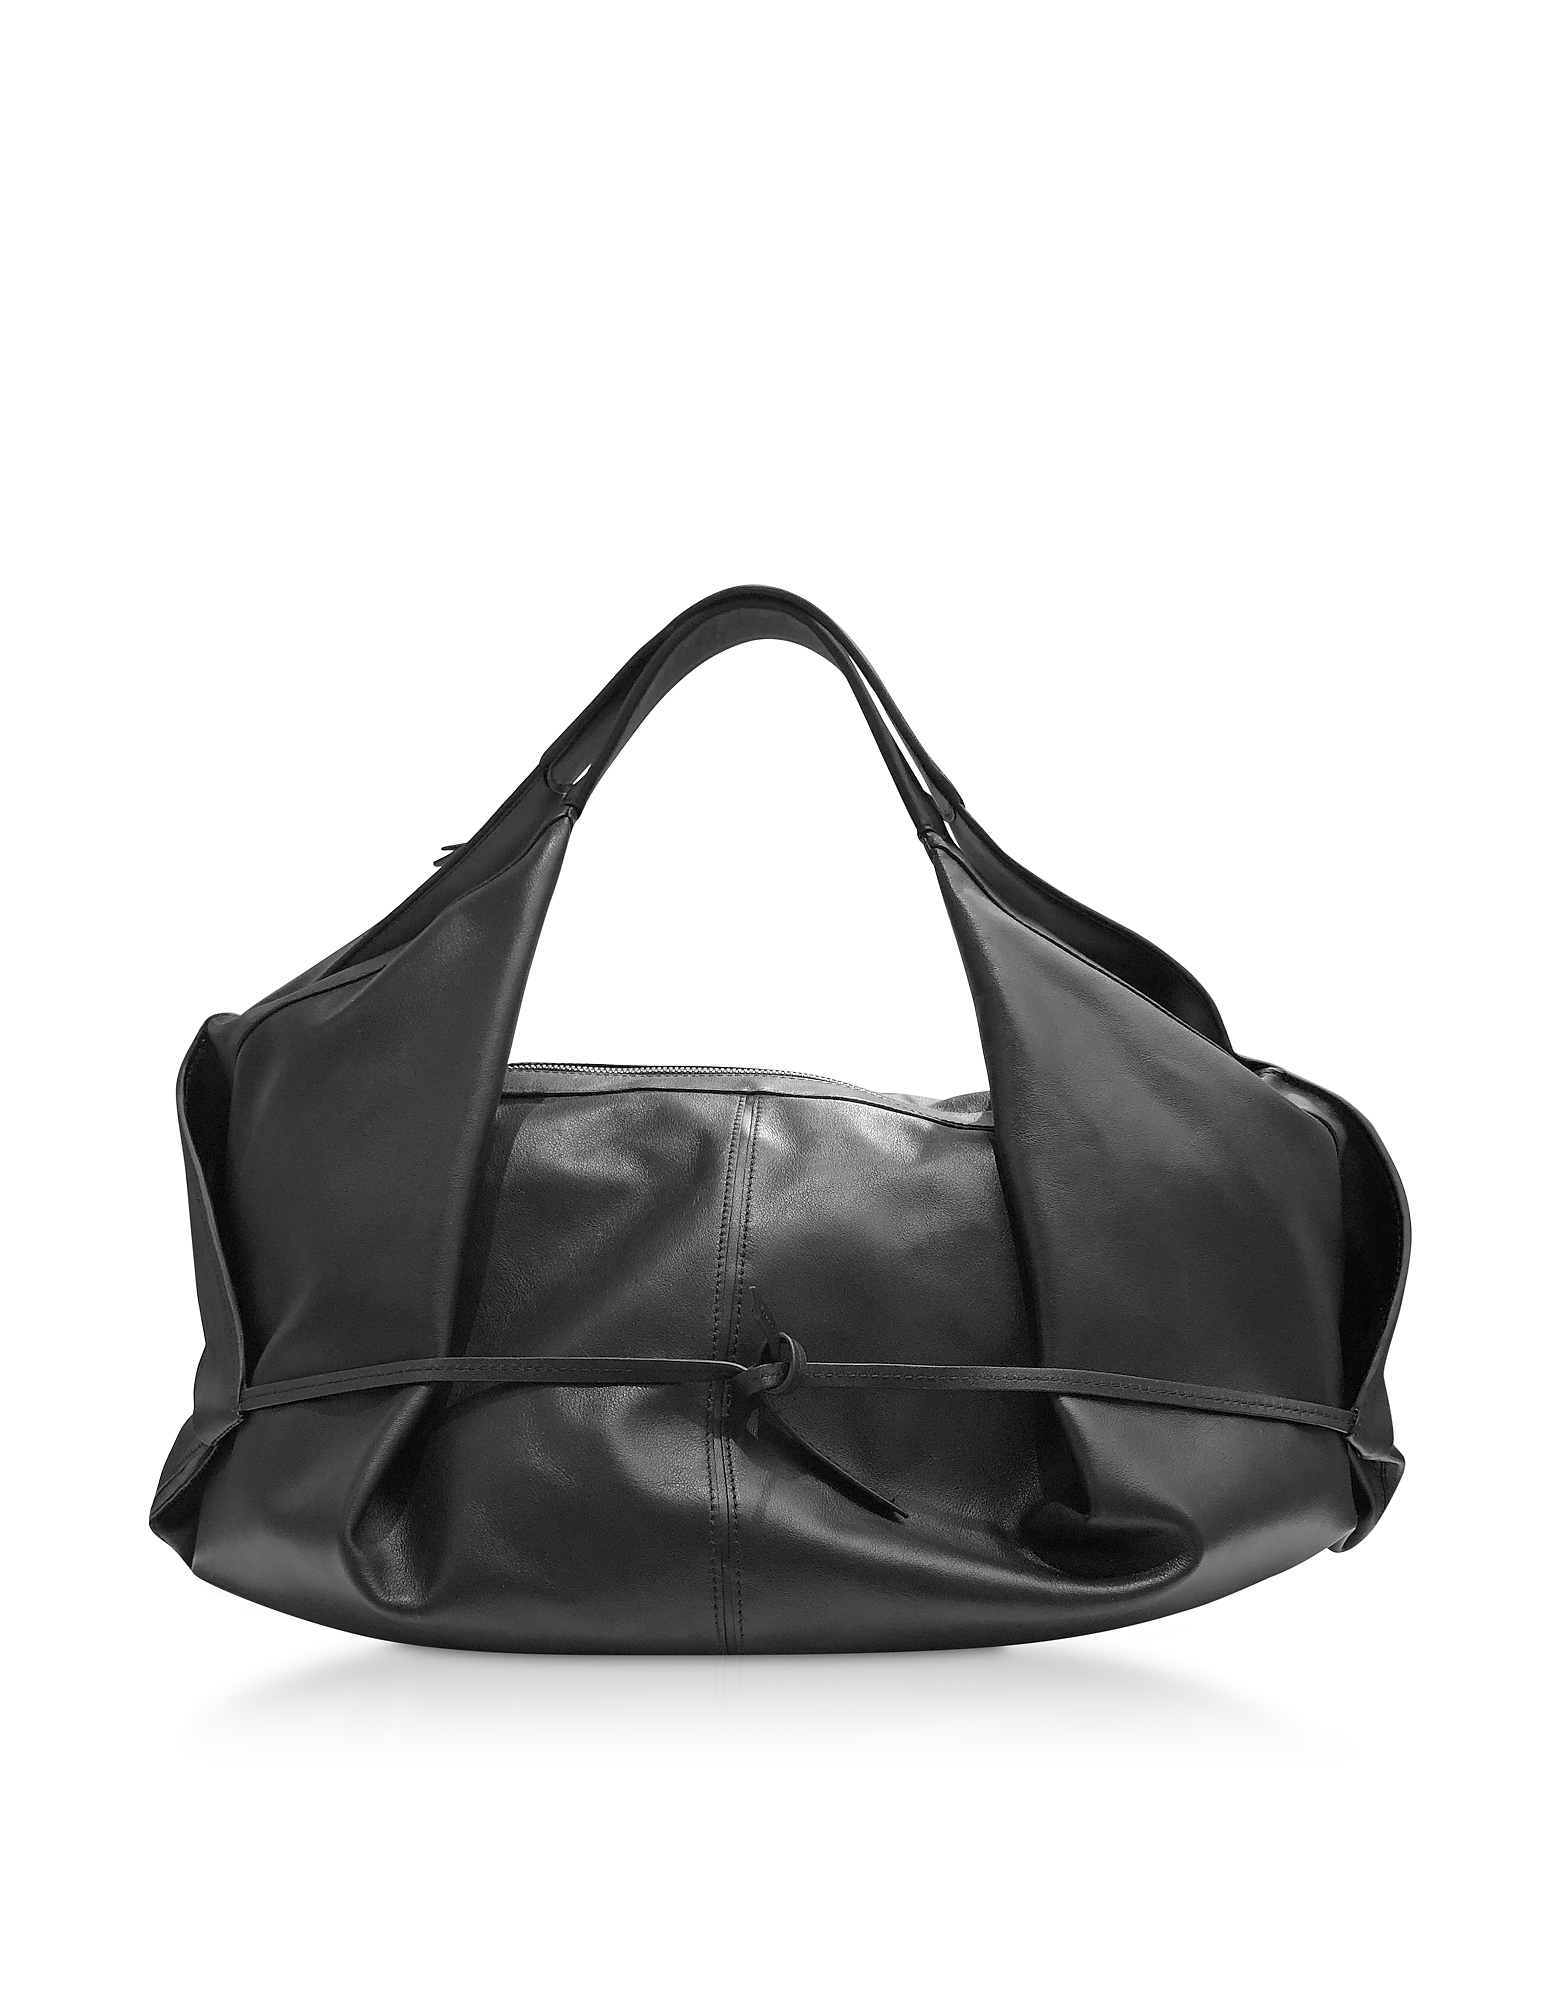 Black Leather Luna Medium Slouchy Hobo Bag